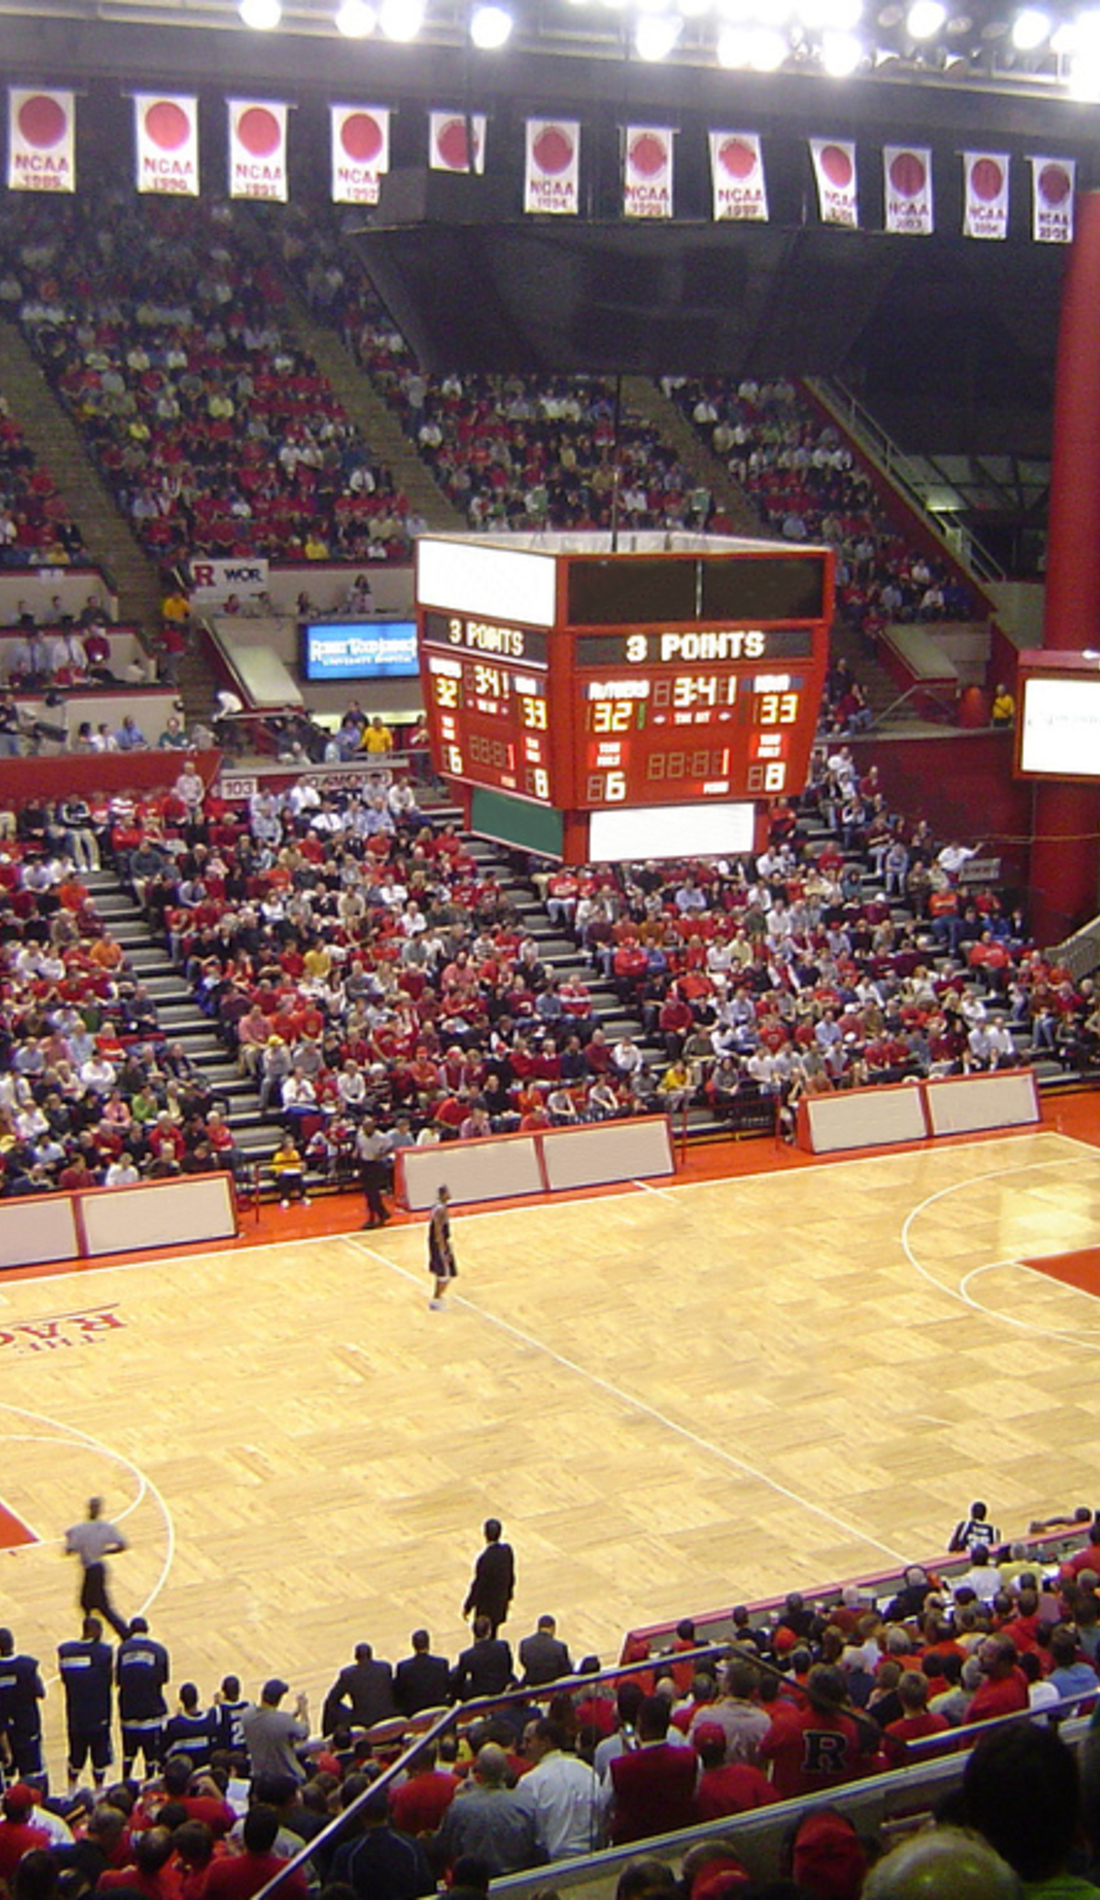 A Rutgers Scarlet Knights Basketball live event